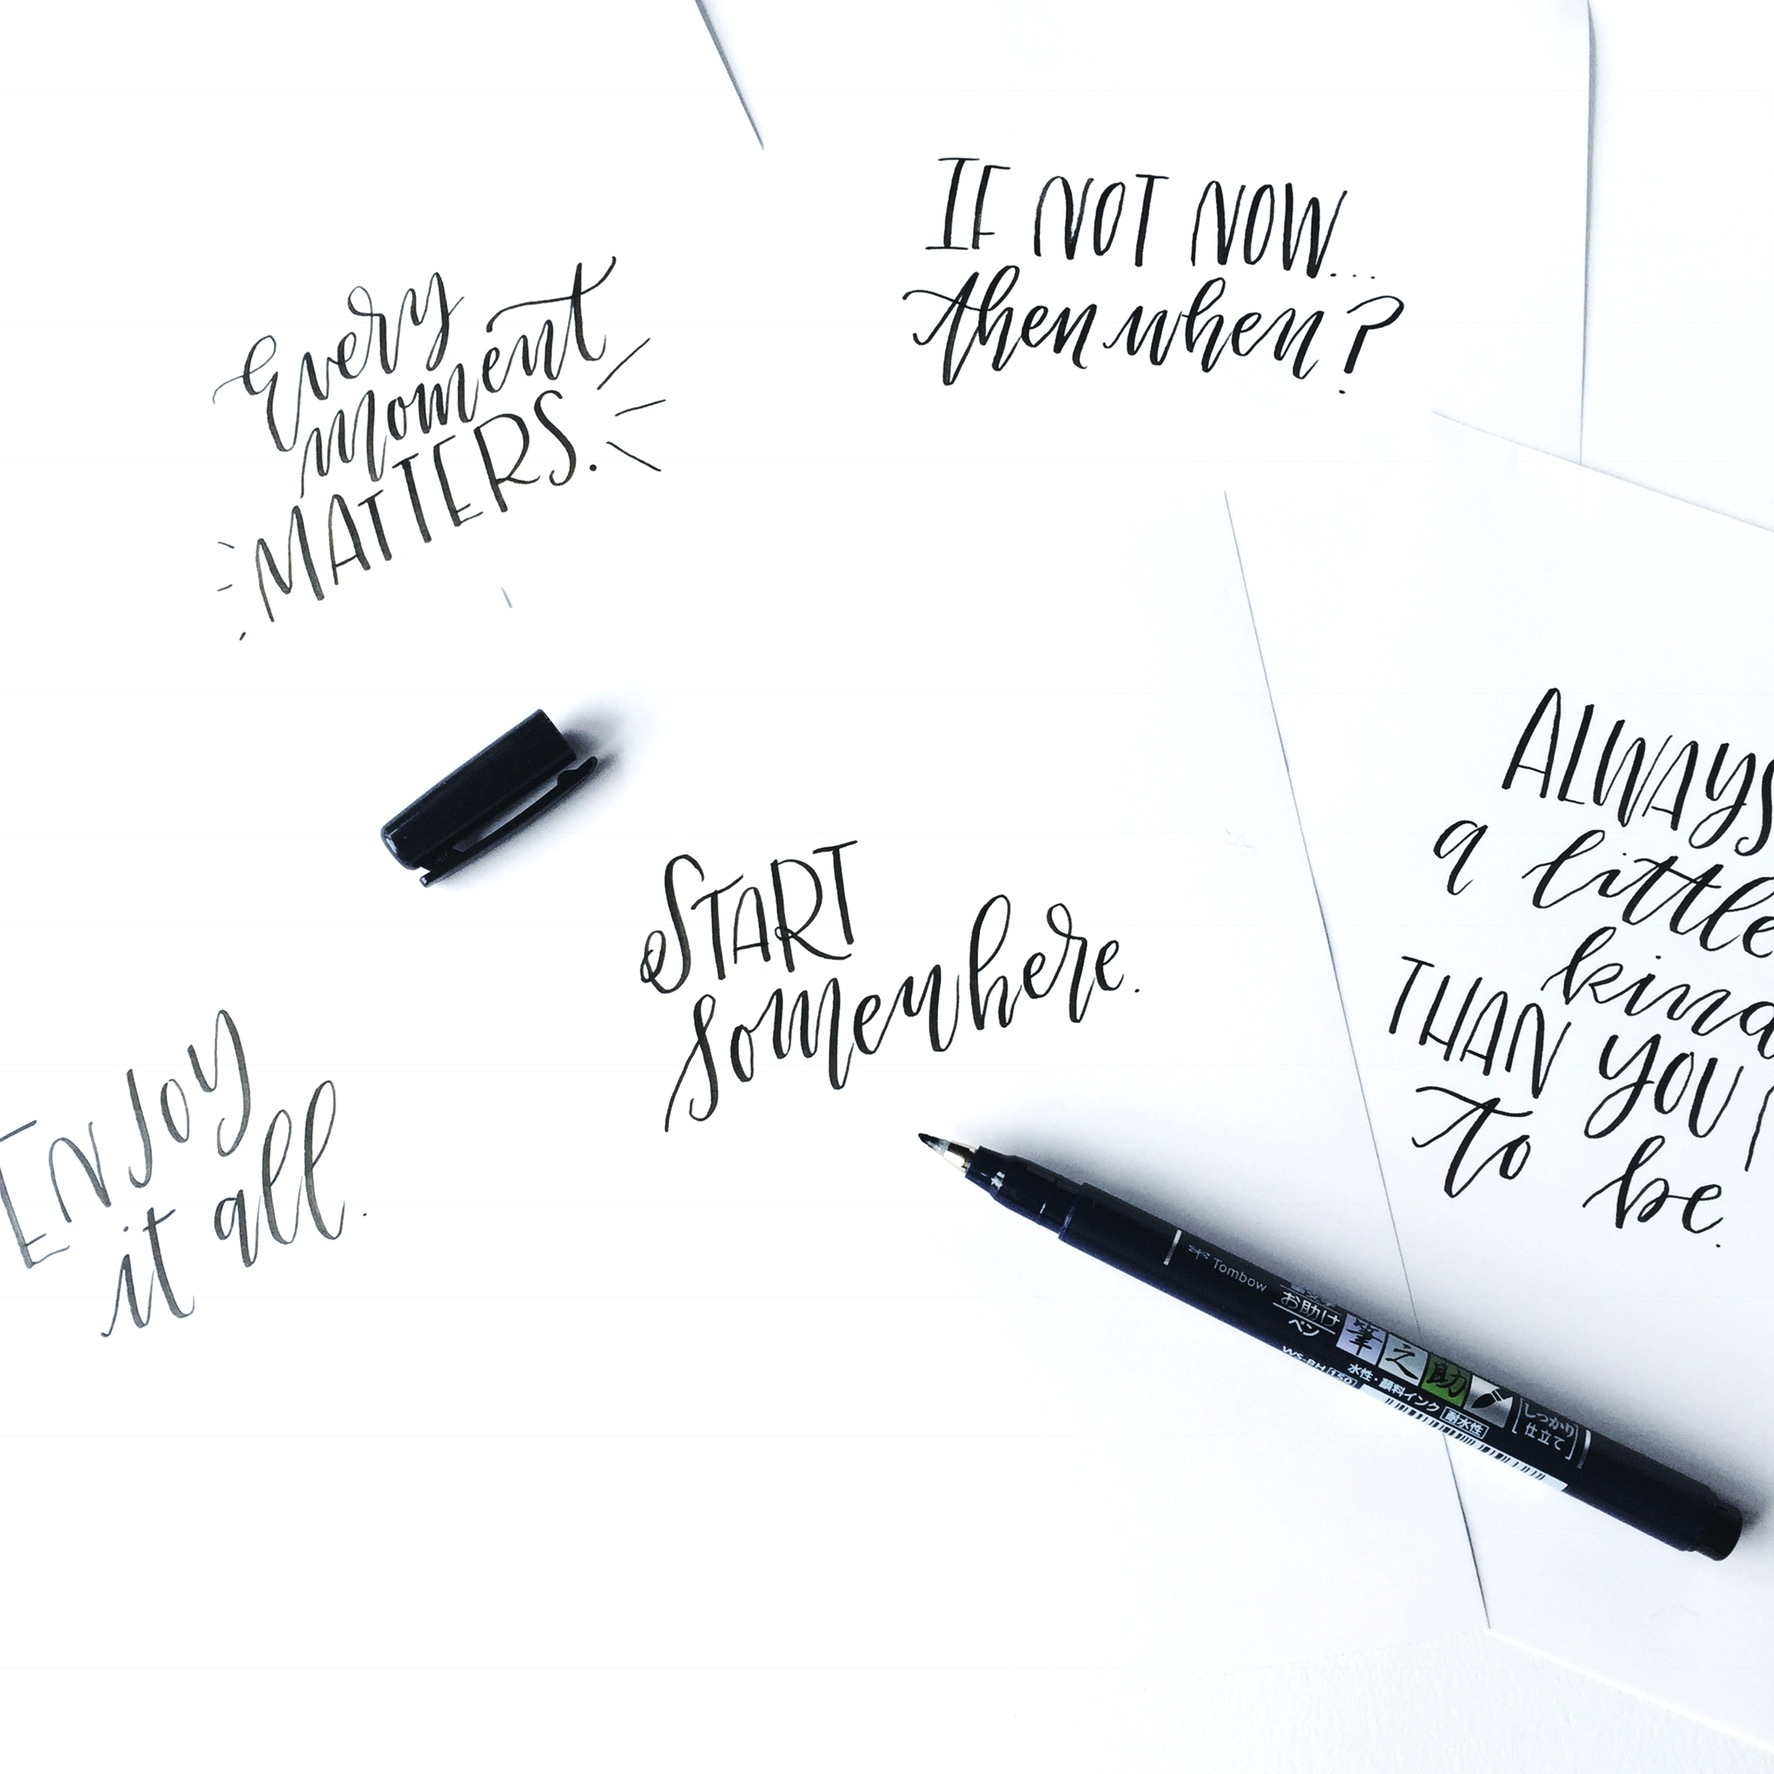 Lauren Fitzmaurice Of Renmadecalligraphy On Instagram And Shows You 3 Creative Ways